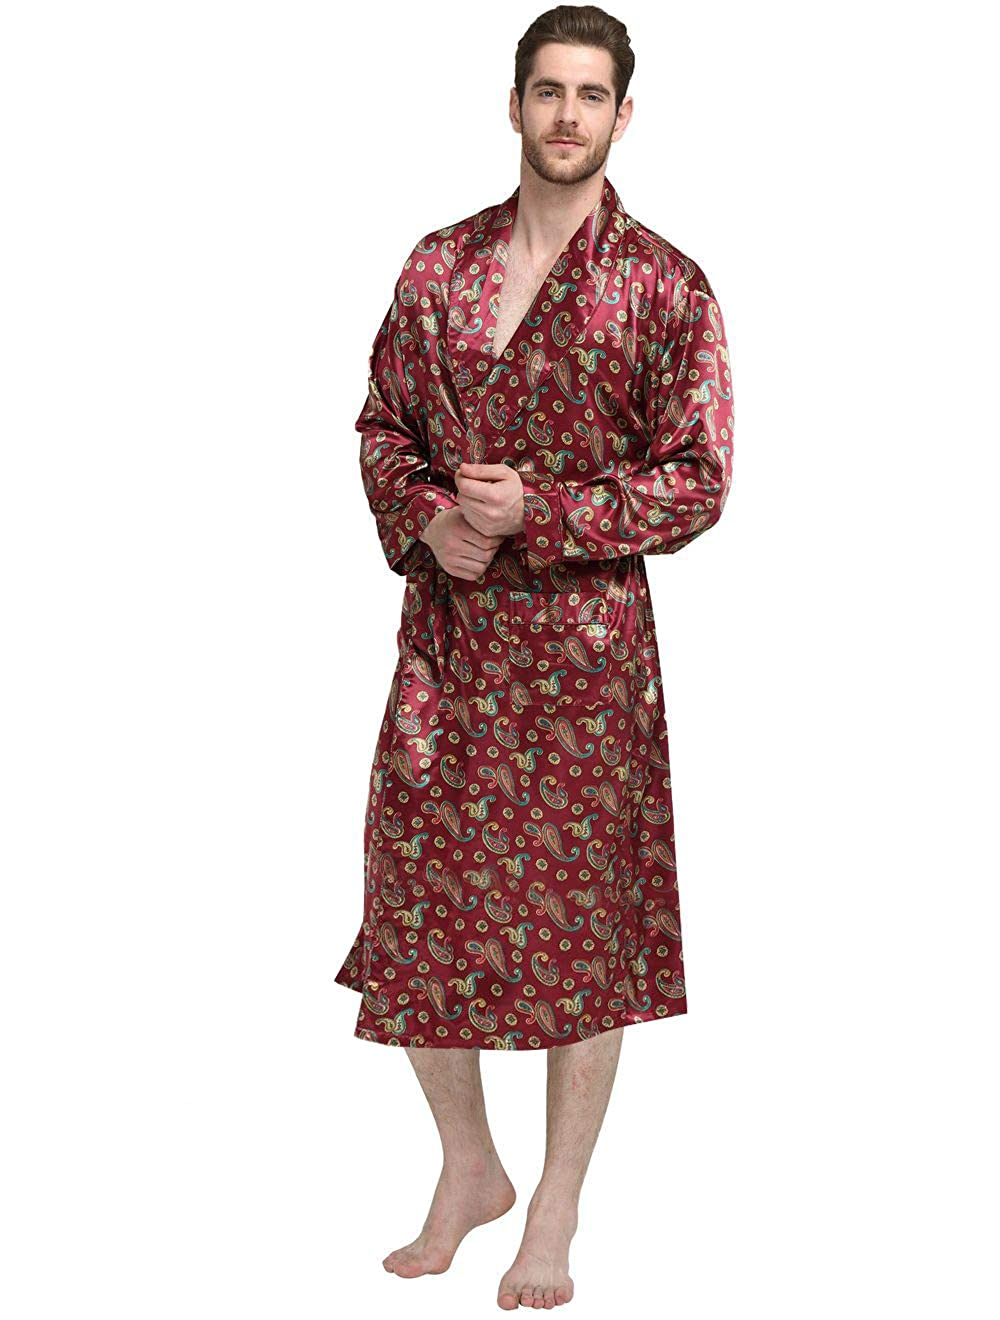 LONXU Mens Silk Satin Bathrobe Robe Nightgown_Big Tall S~3XL Plus_Gifts MRobeyu